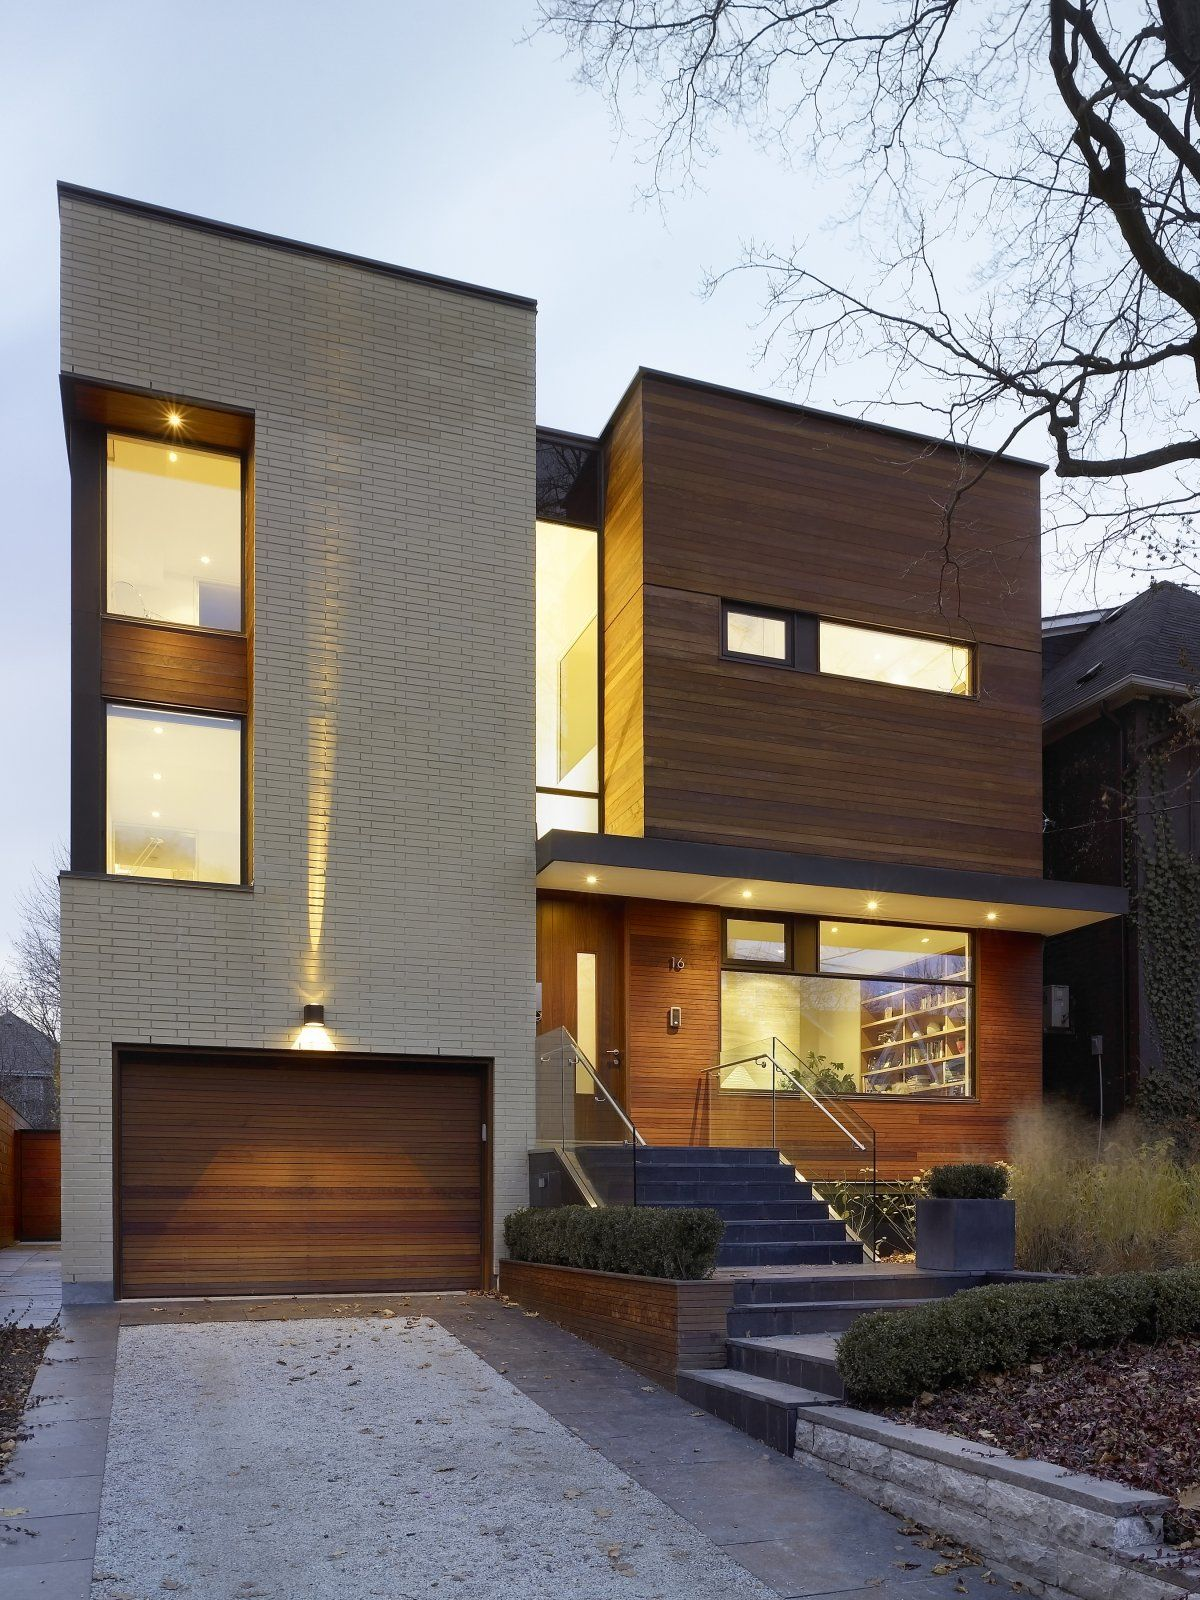 Contemporary Exterior Design Modern Wood Siding Modern House Exterior Elevation: Contrast Of Light Brick And Warm Timber, And Metal Framing To Glazing Units. Consid…